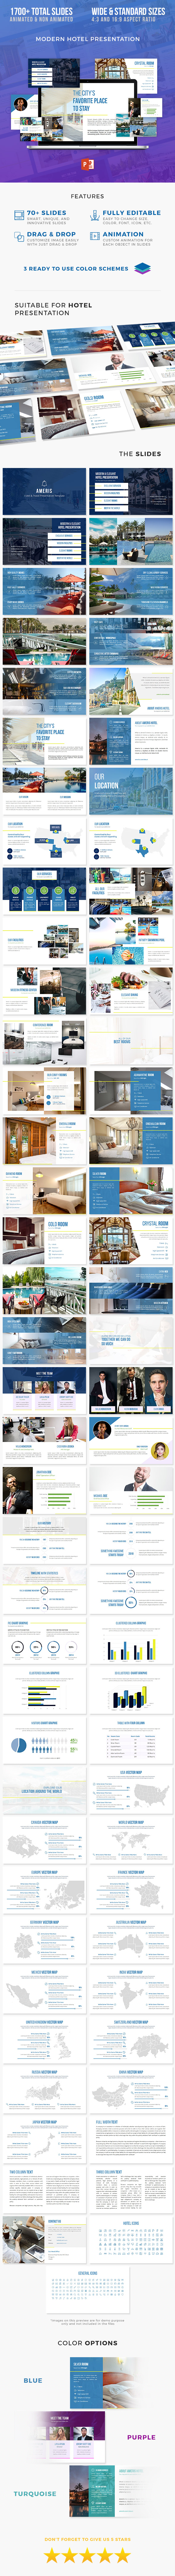 Travel & Hotel Presentation Template - PowerPoint Templates Presentation Templates